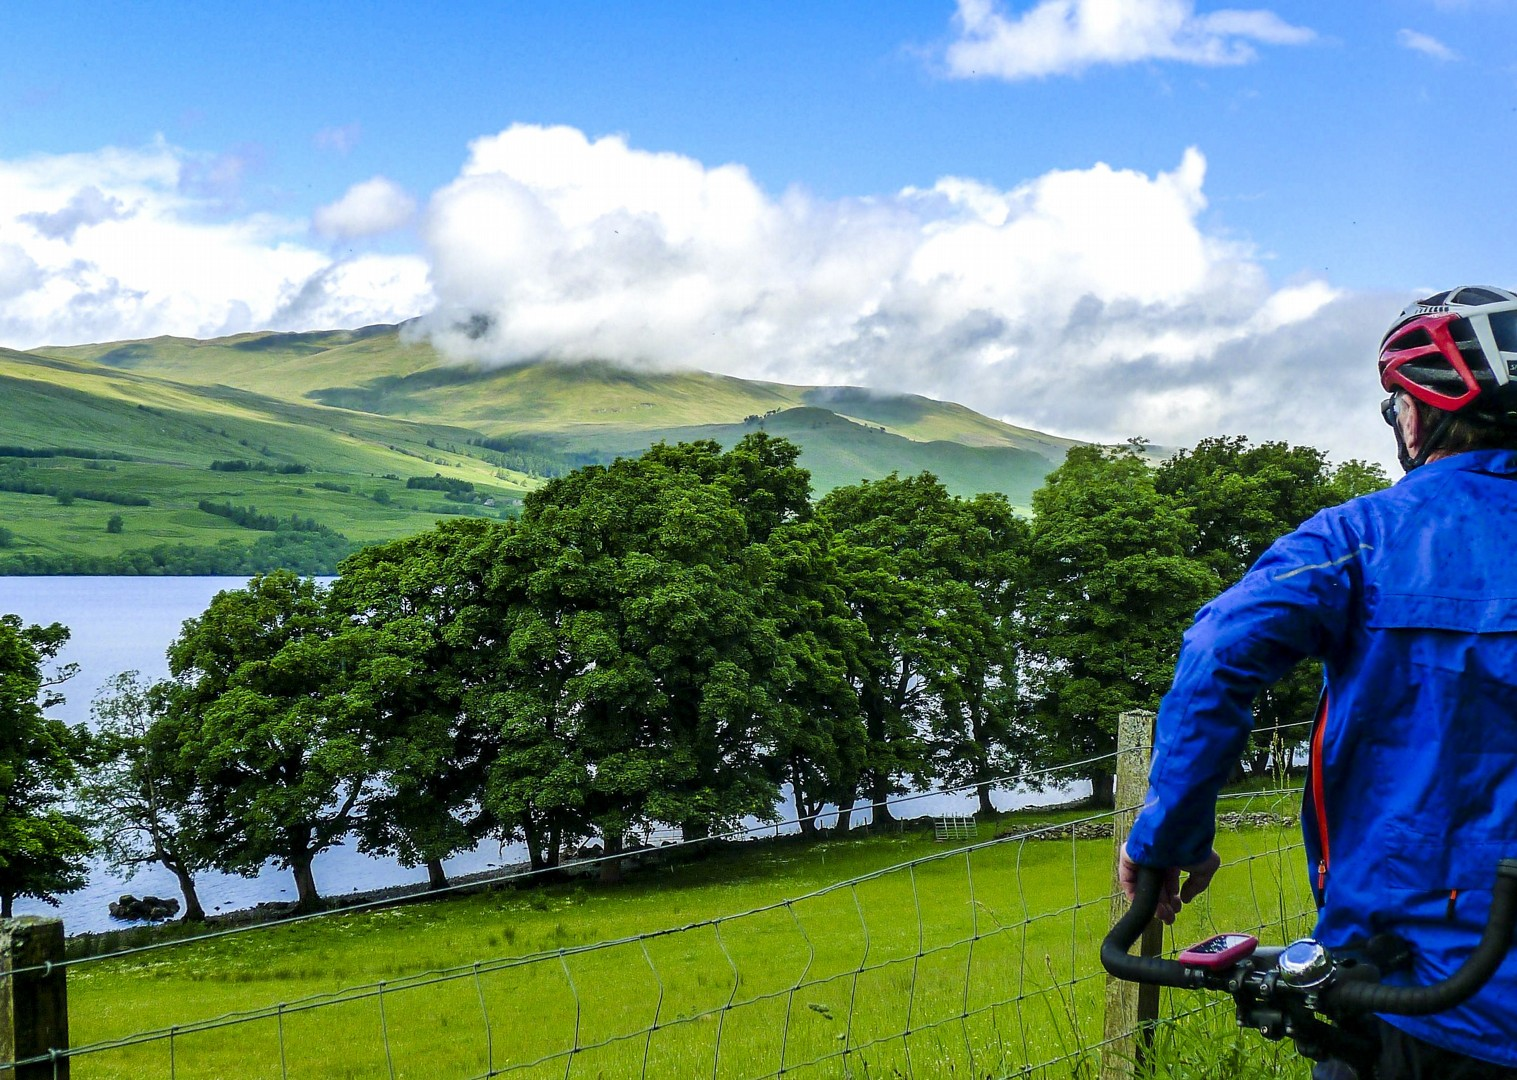 hills-cycling-fun-tour-scotland-uk-mountains-loch-lake-cycle-paths.jpg - UK - Scotland - Lochs and Glens - Self-Guided Leisure Cycling Holiday - Leisure Cycling